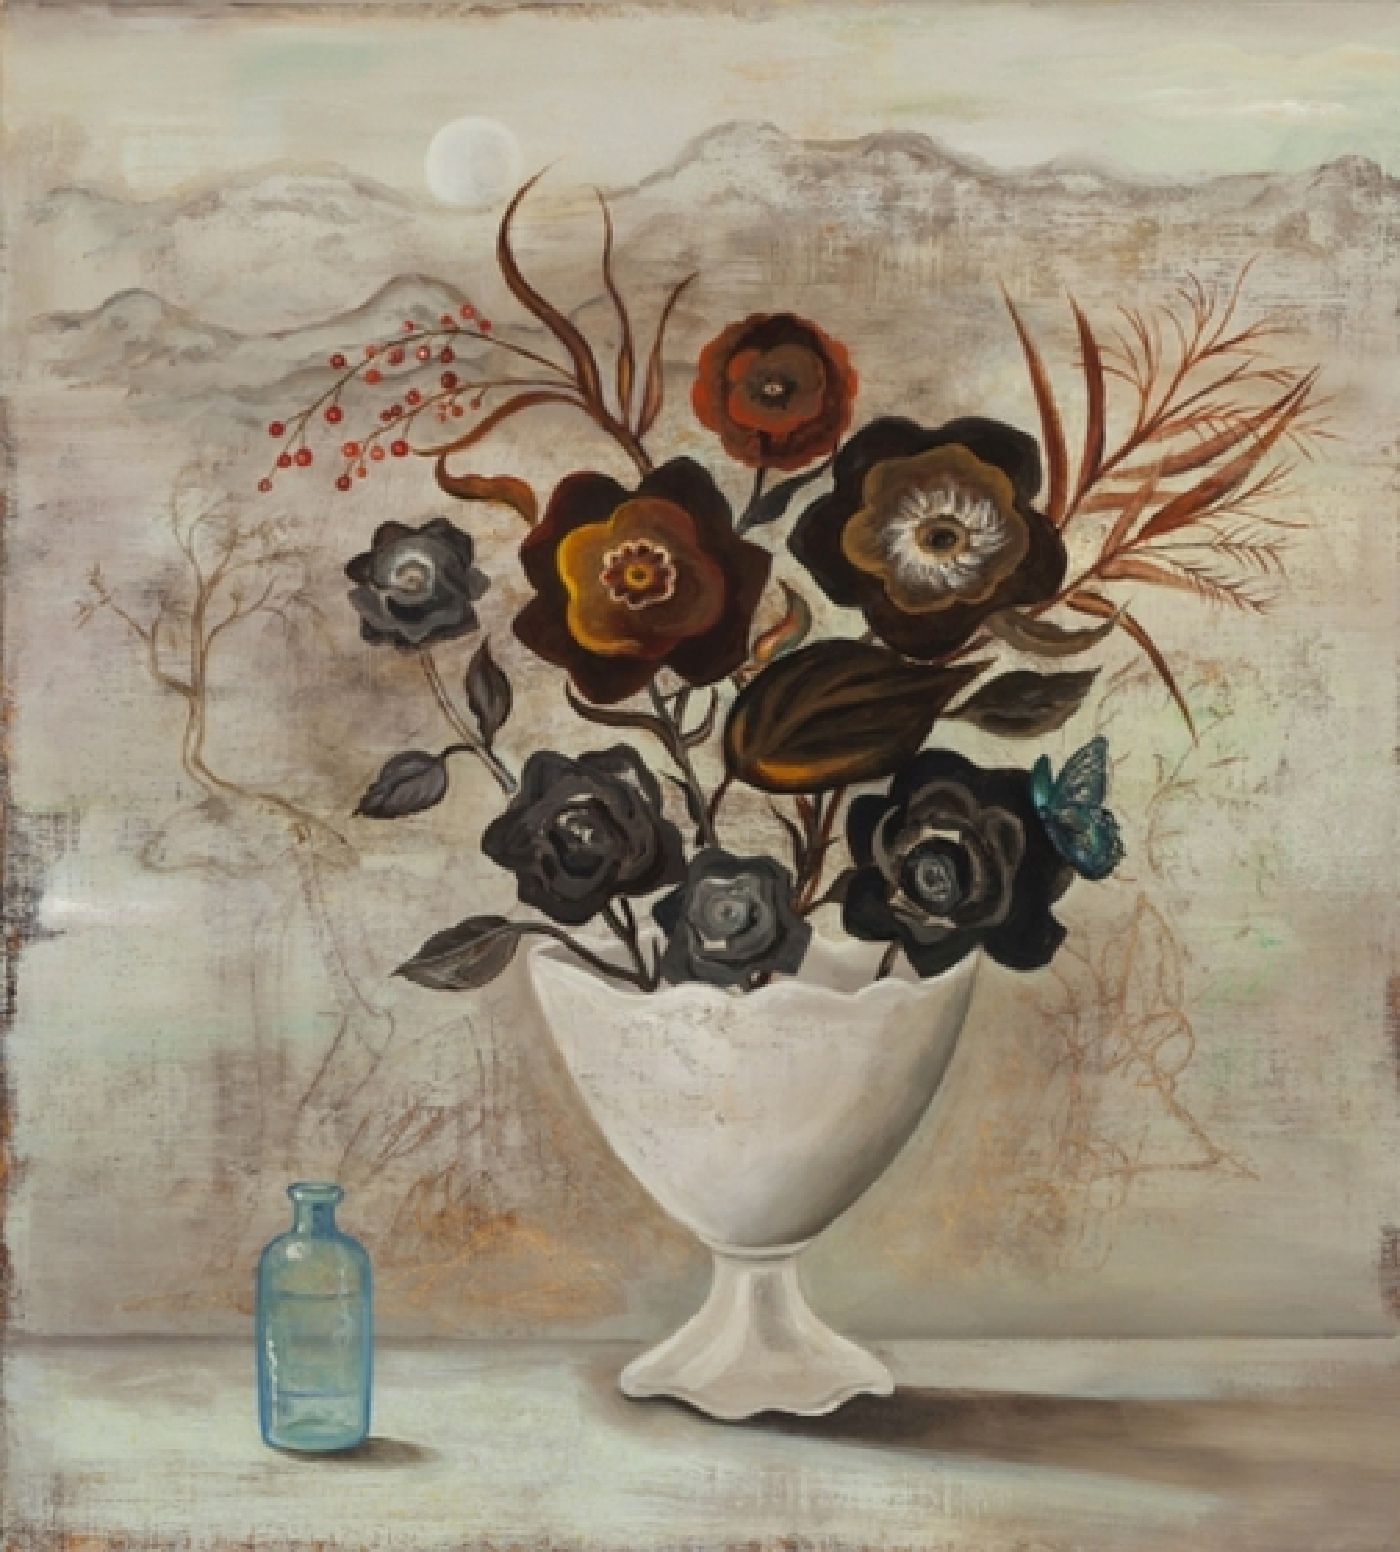 The Alchemist's Roses - oil on linen, 32 x 29 inches, 2015